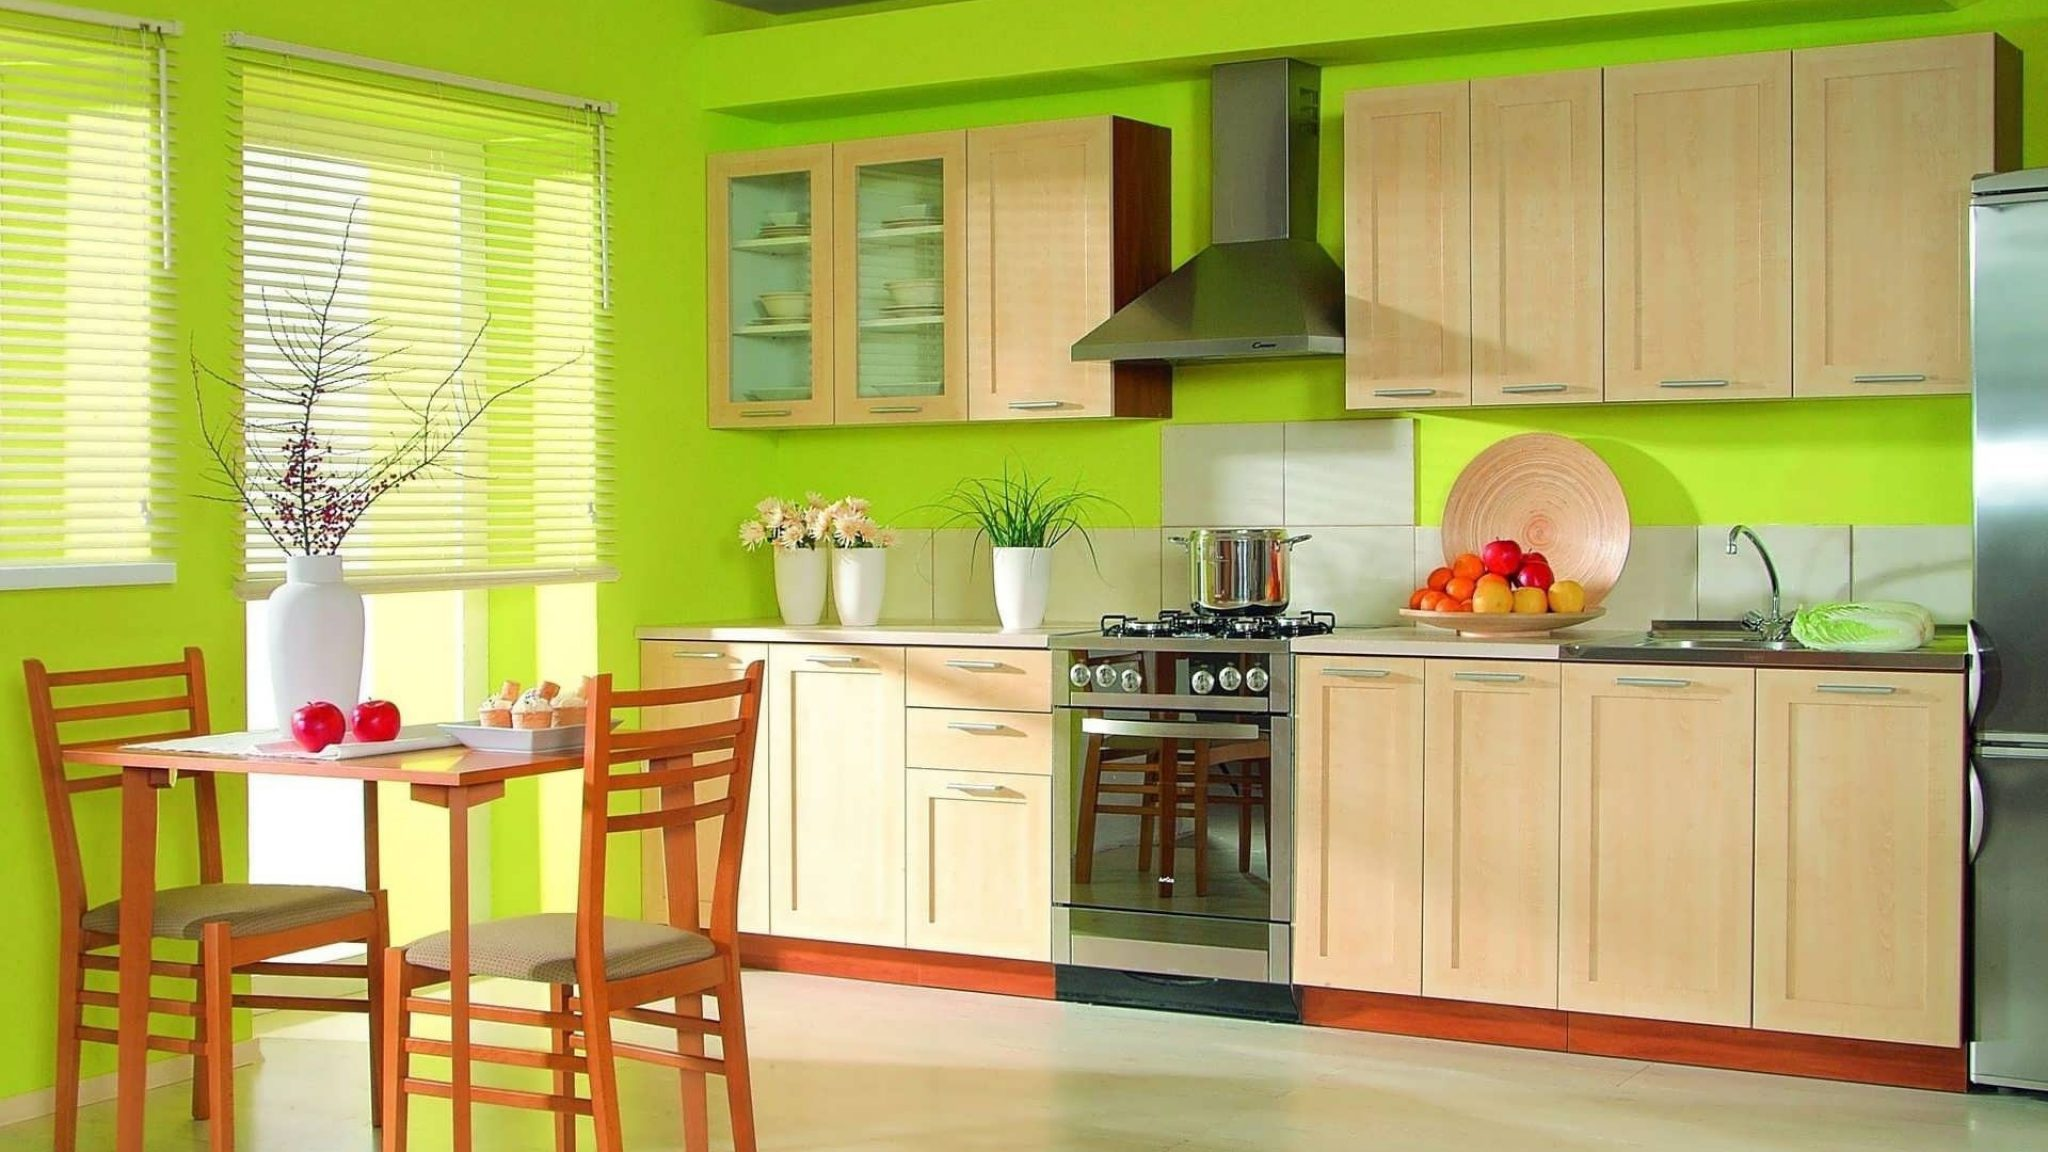 Cocinas modernas evita los errores mas comunes hoy lowcost for Normal kitchen design